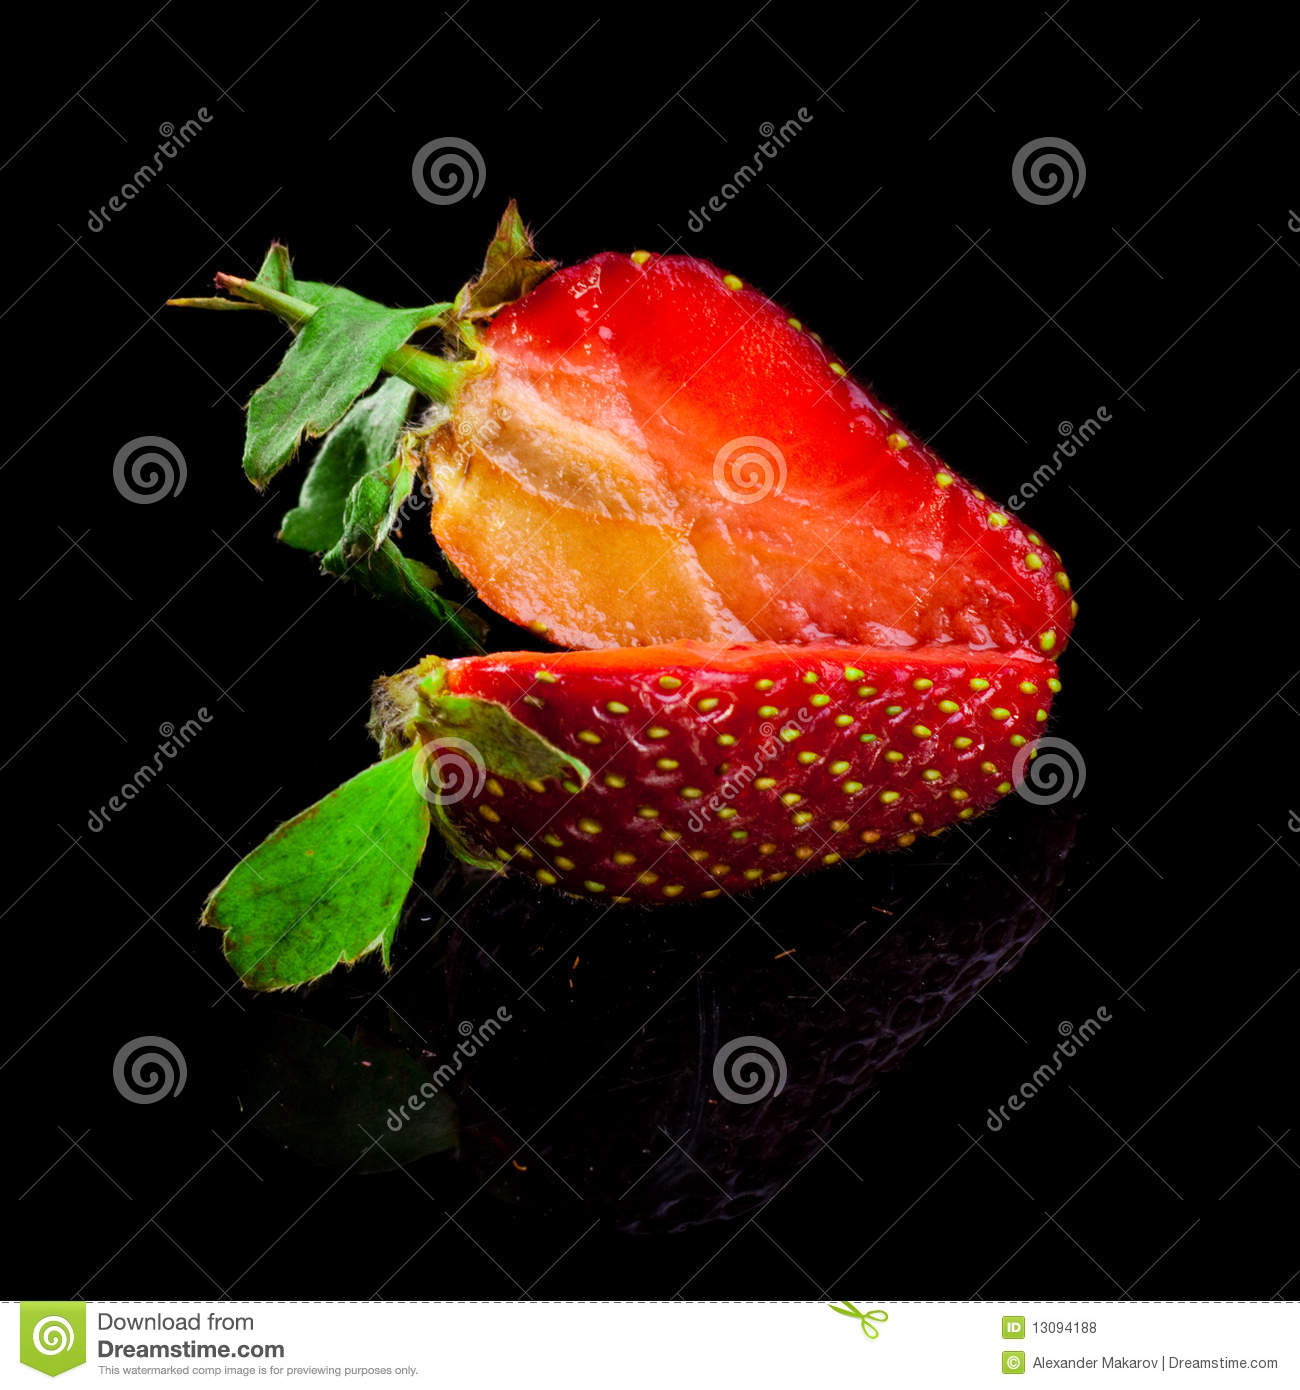 how to preserve cut strawberries